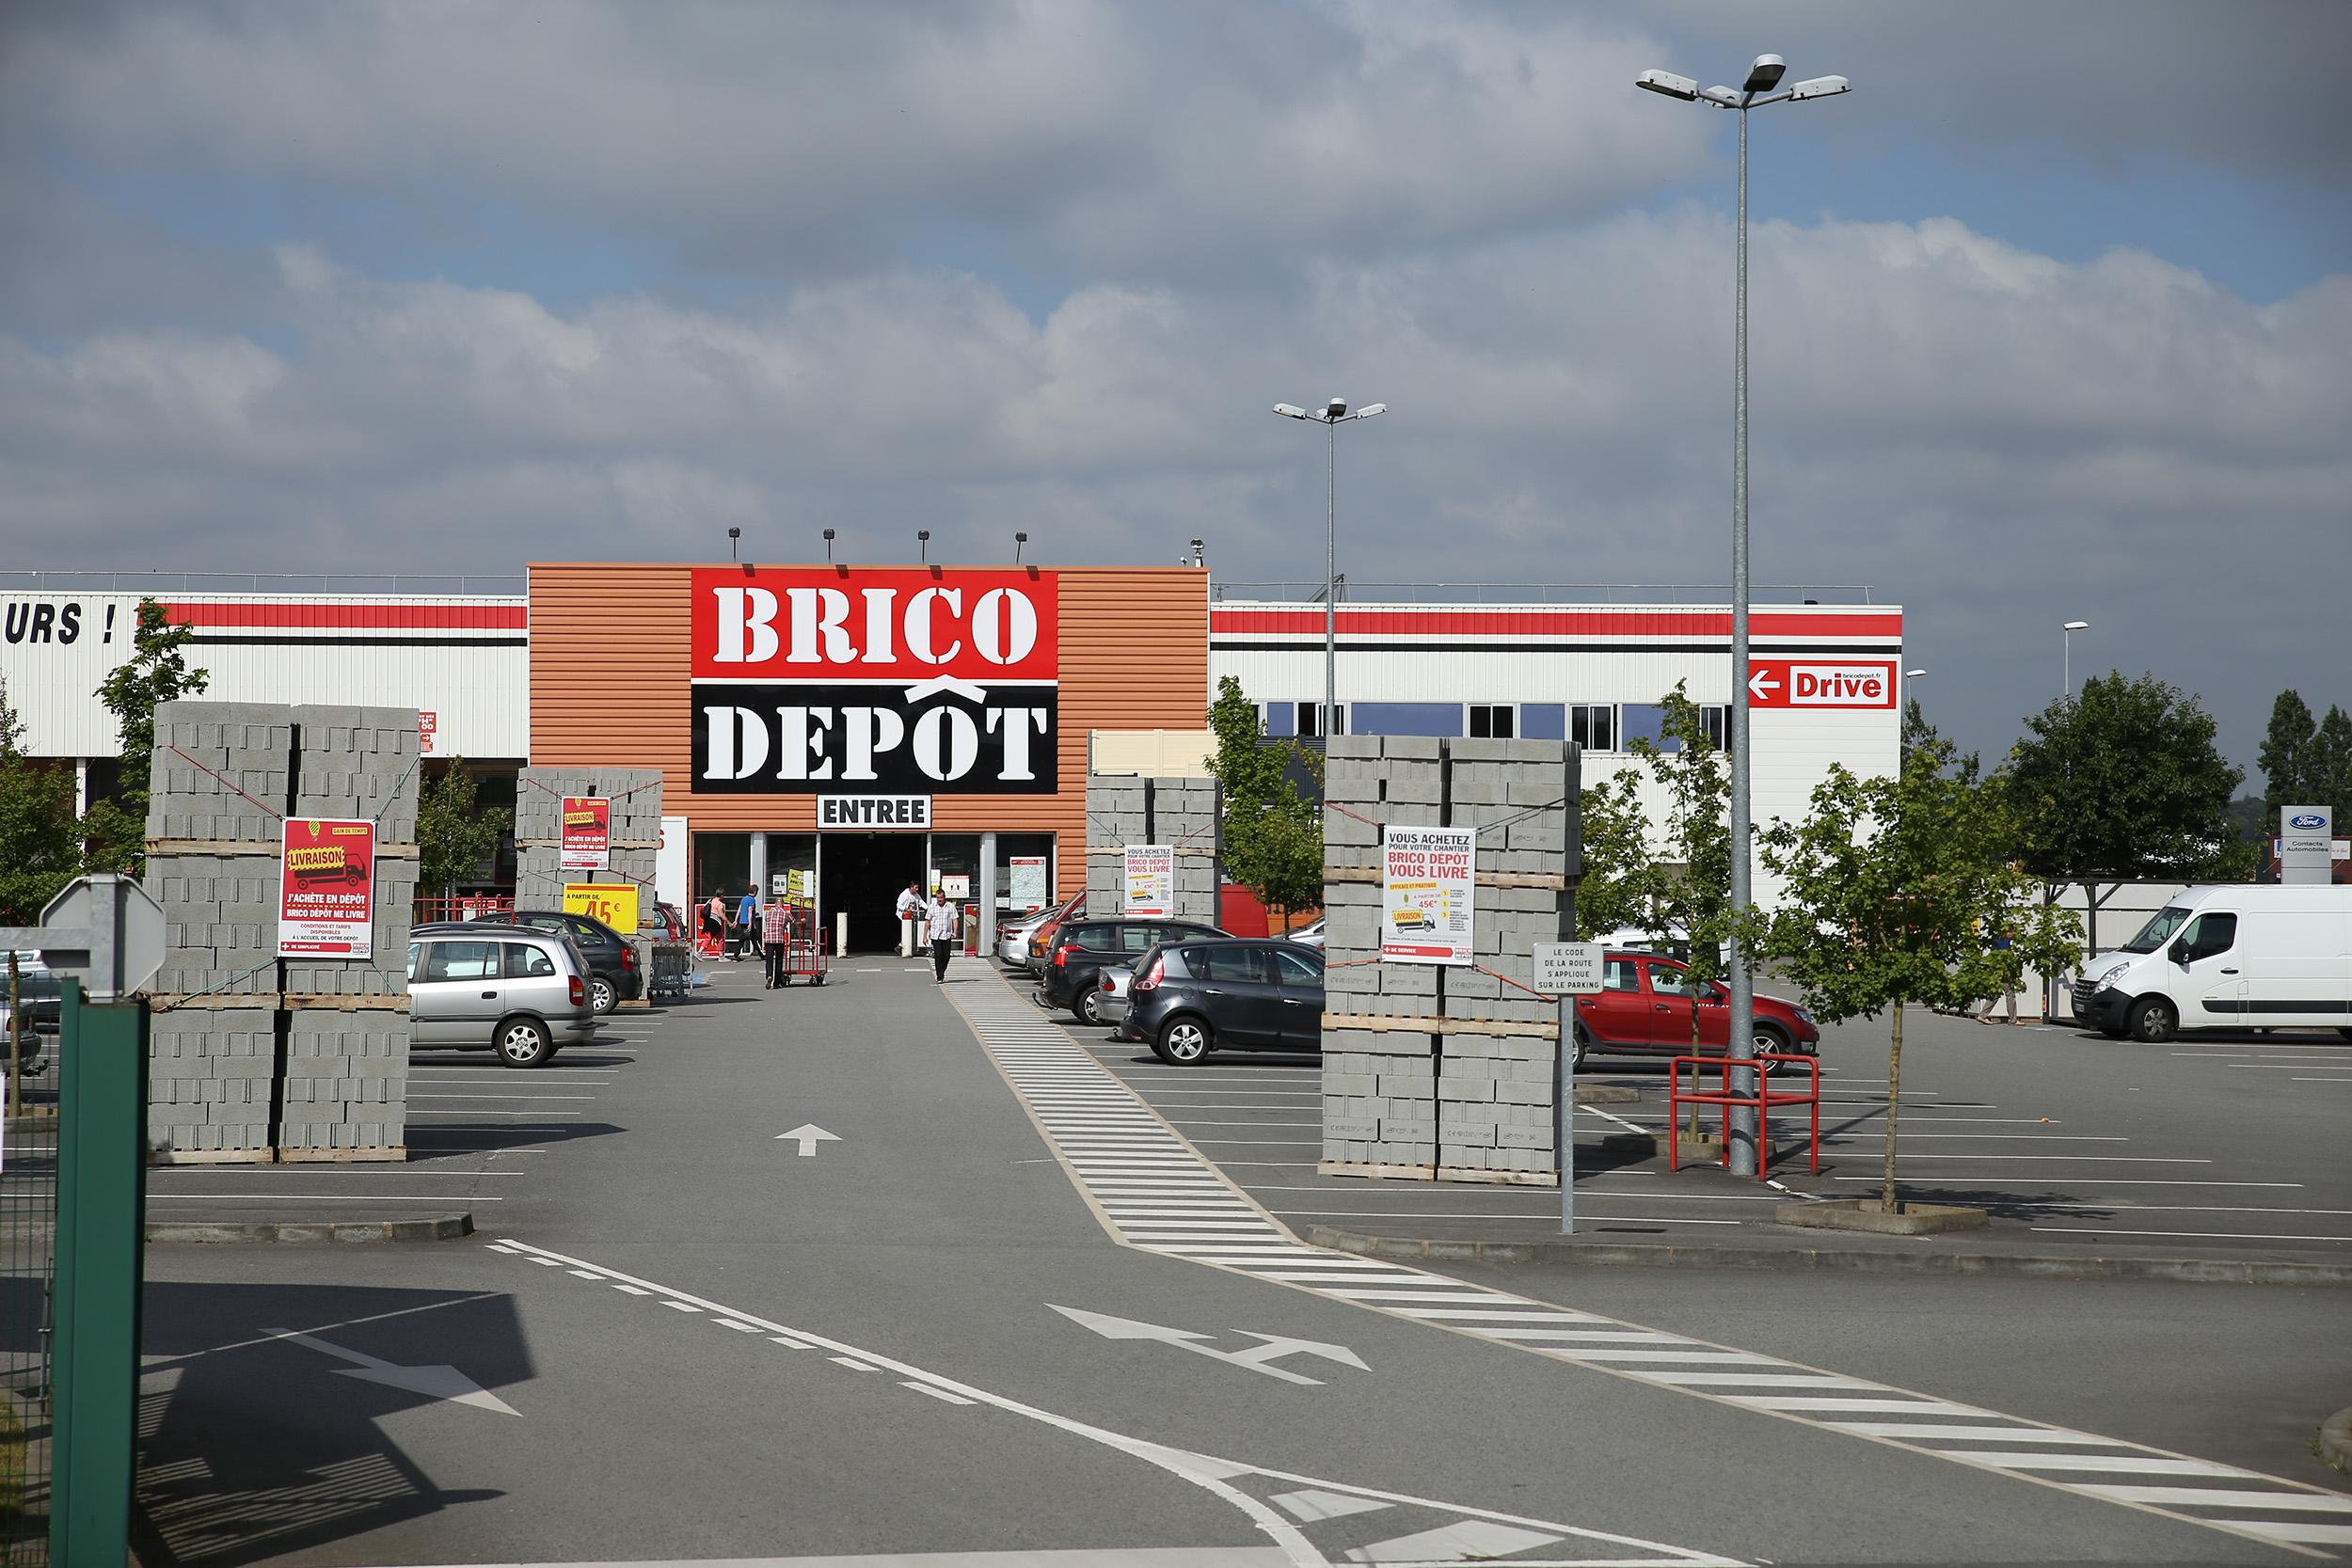 Awesome Brico Depot Rennes Horaires #10: Brico Dépôt Cesson Sévigné : Brico Dépôt Cesson Sévigné